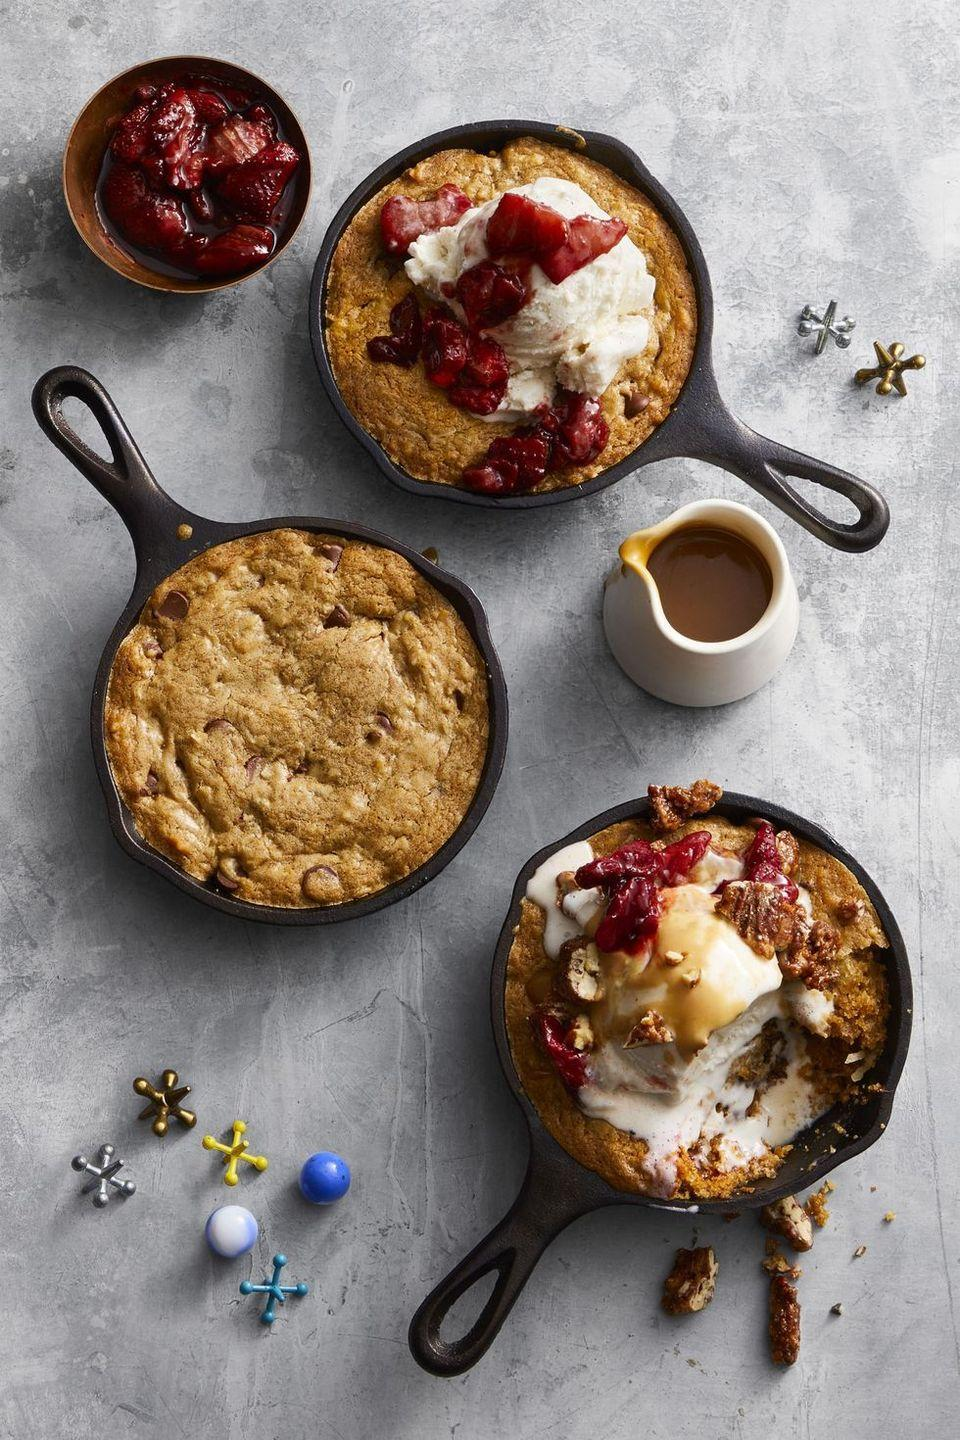 "<p>Celebrate the end of a long week with fun-to-make dessert that you can customize with candied pecans, miso caramel, maple-roasted strawberries — or all of the above.</p><p><em><a href=""https://www.goodhousekeeping.com/food-recipes/dessert/a47671/skillet-cookie-sundaes-recipe/"" rel=""nofollow noopener"" target=""_blank"" data-ylk=""slk:Get the recipe for Skillet Cookie Sundaes »"" class=""link rapid-noclick-resp"">Get the recipe for Skillet Cookie Sundaes »</a></em></p>"